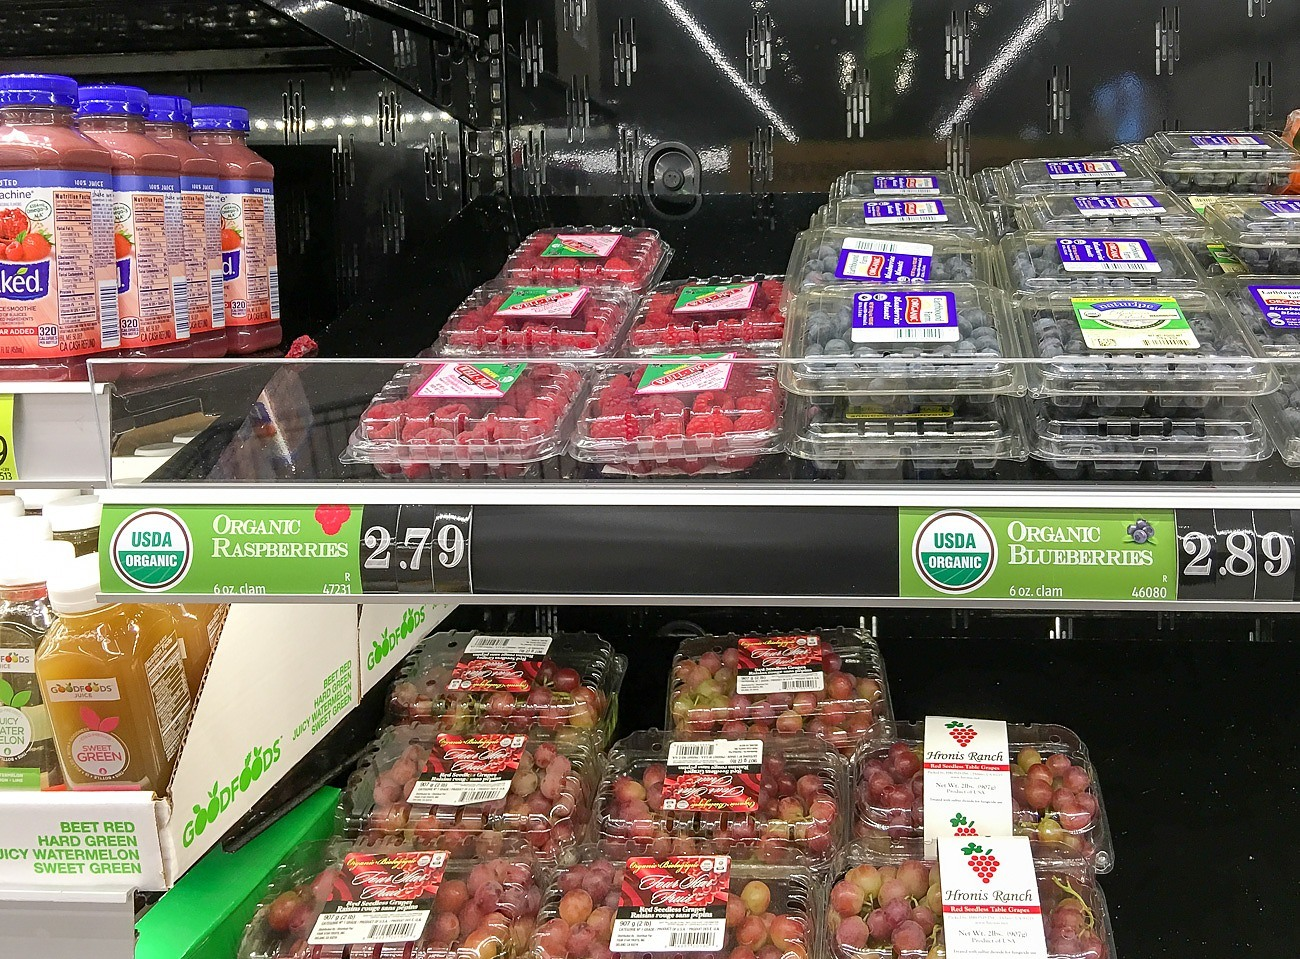 Discounted fresh berries at Aldi in San Diego